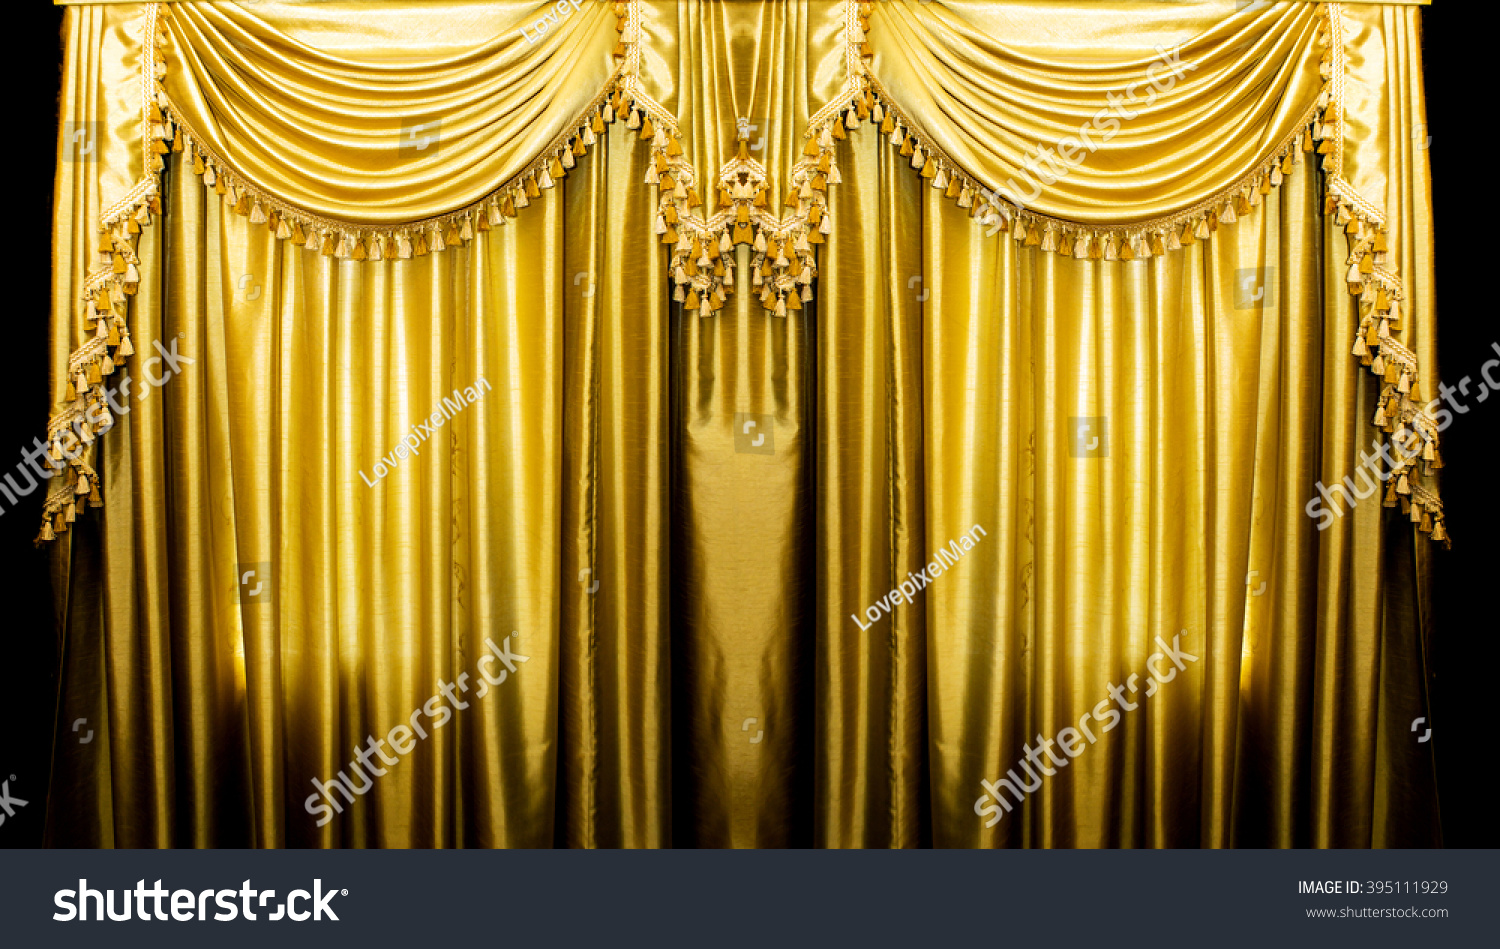 Gold stage curtain - Gold Curtains On Stage For Background